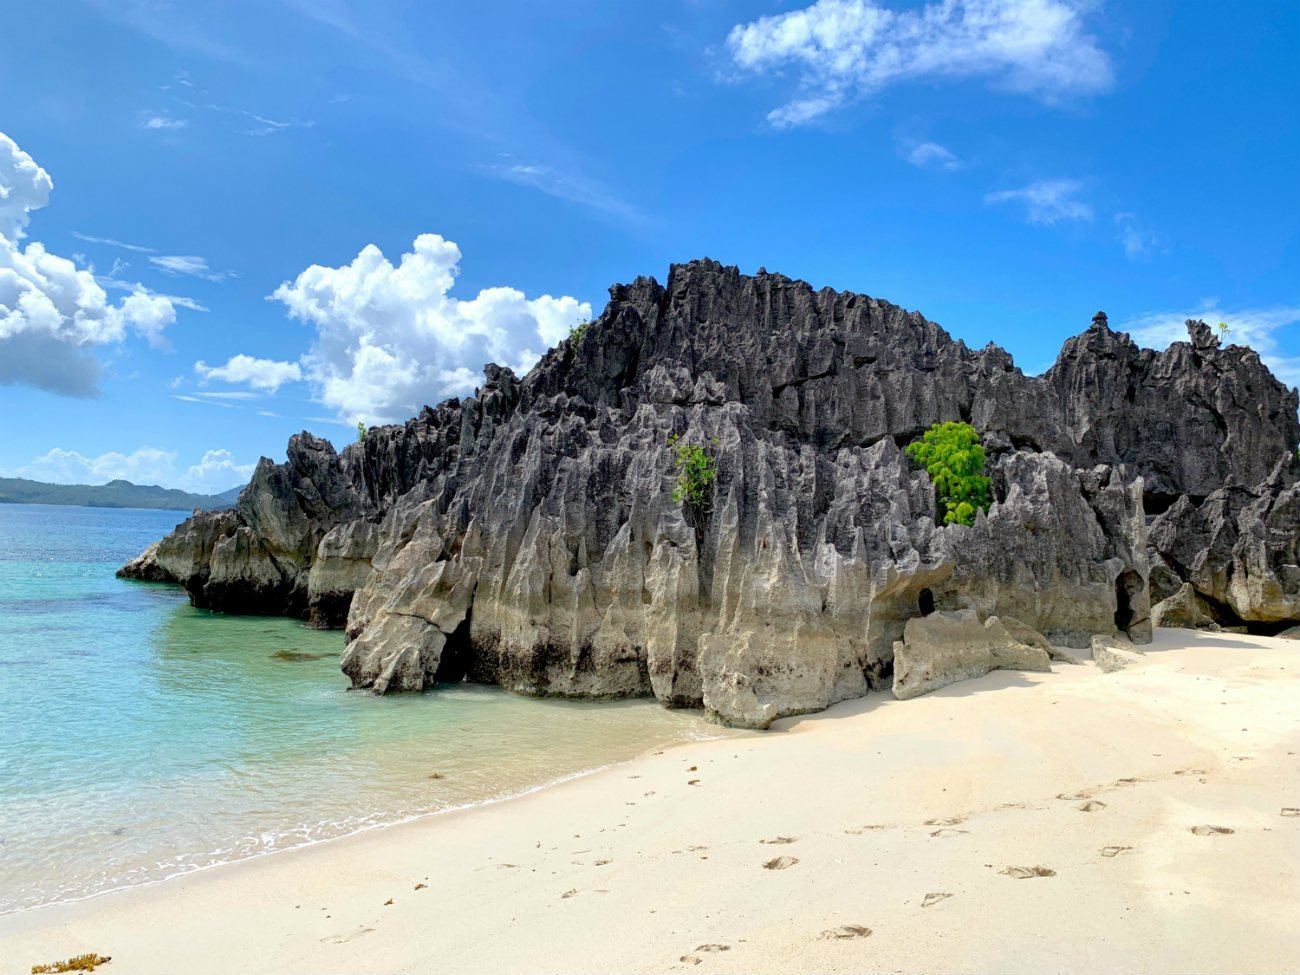 5 excellent reasons to choose the Caramoan Islands over El Nido 6